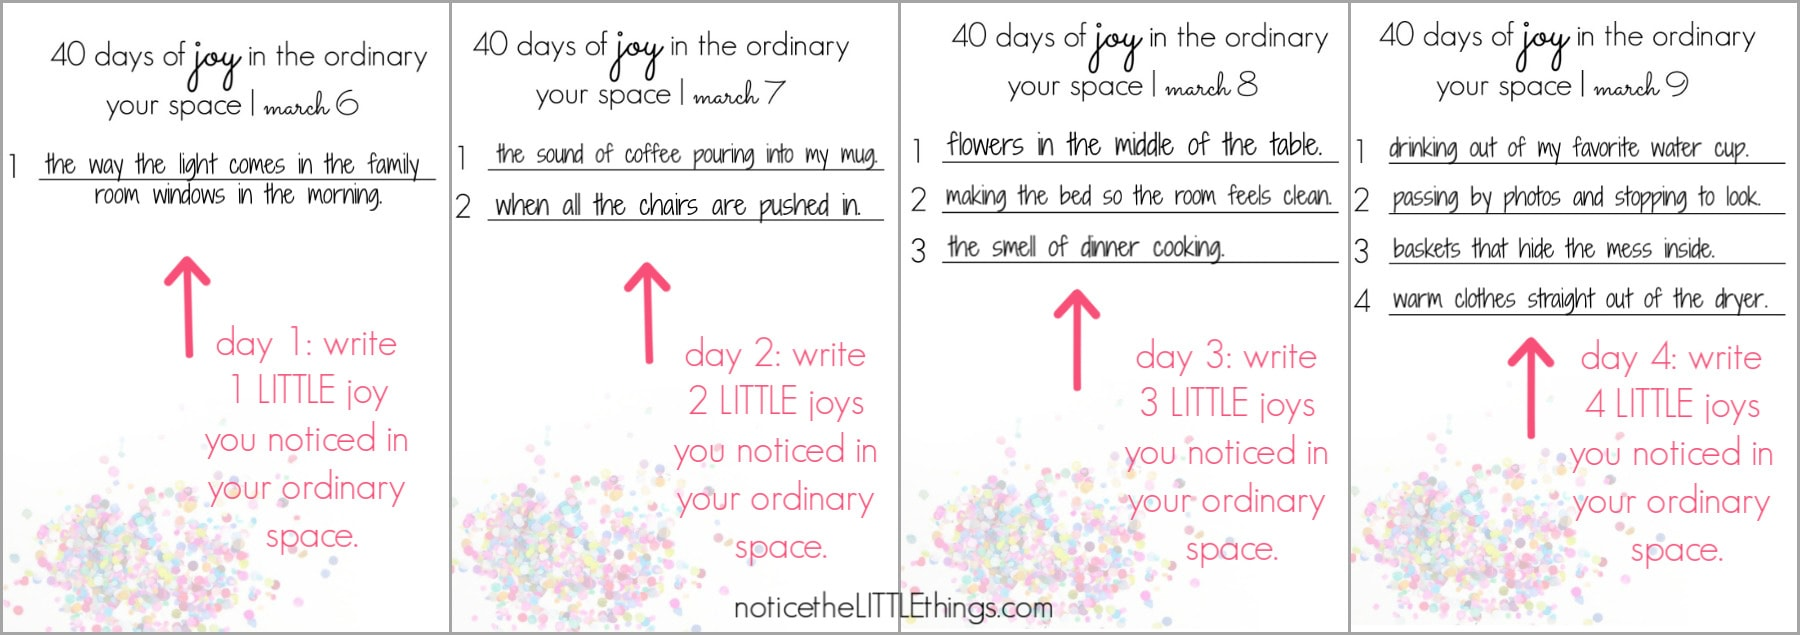 40 days of joy in the ordinary